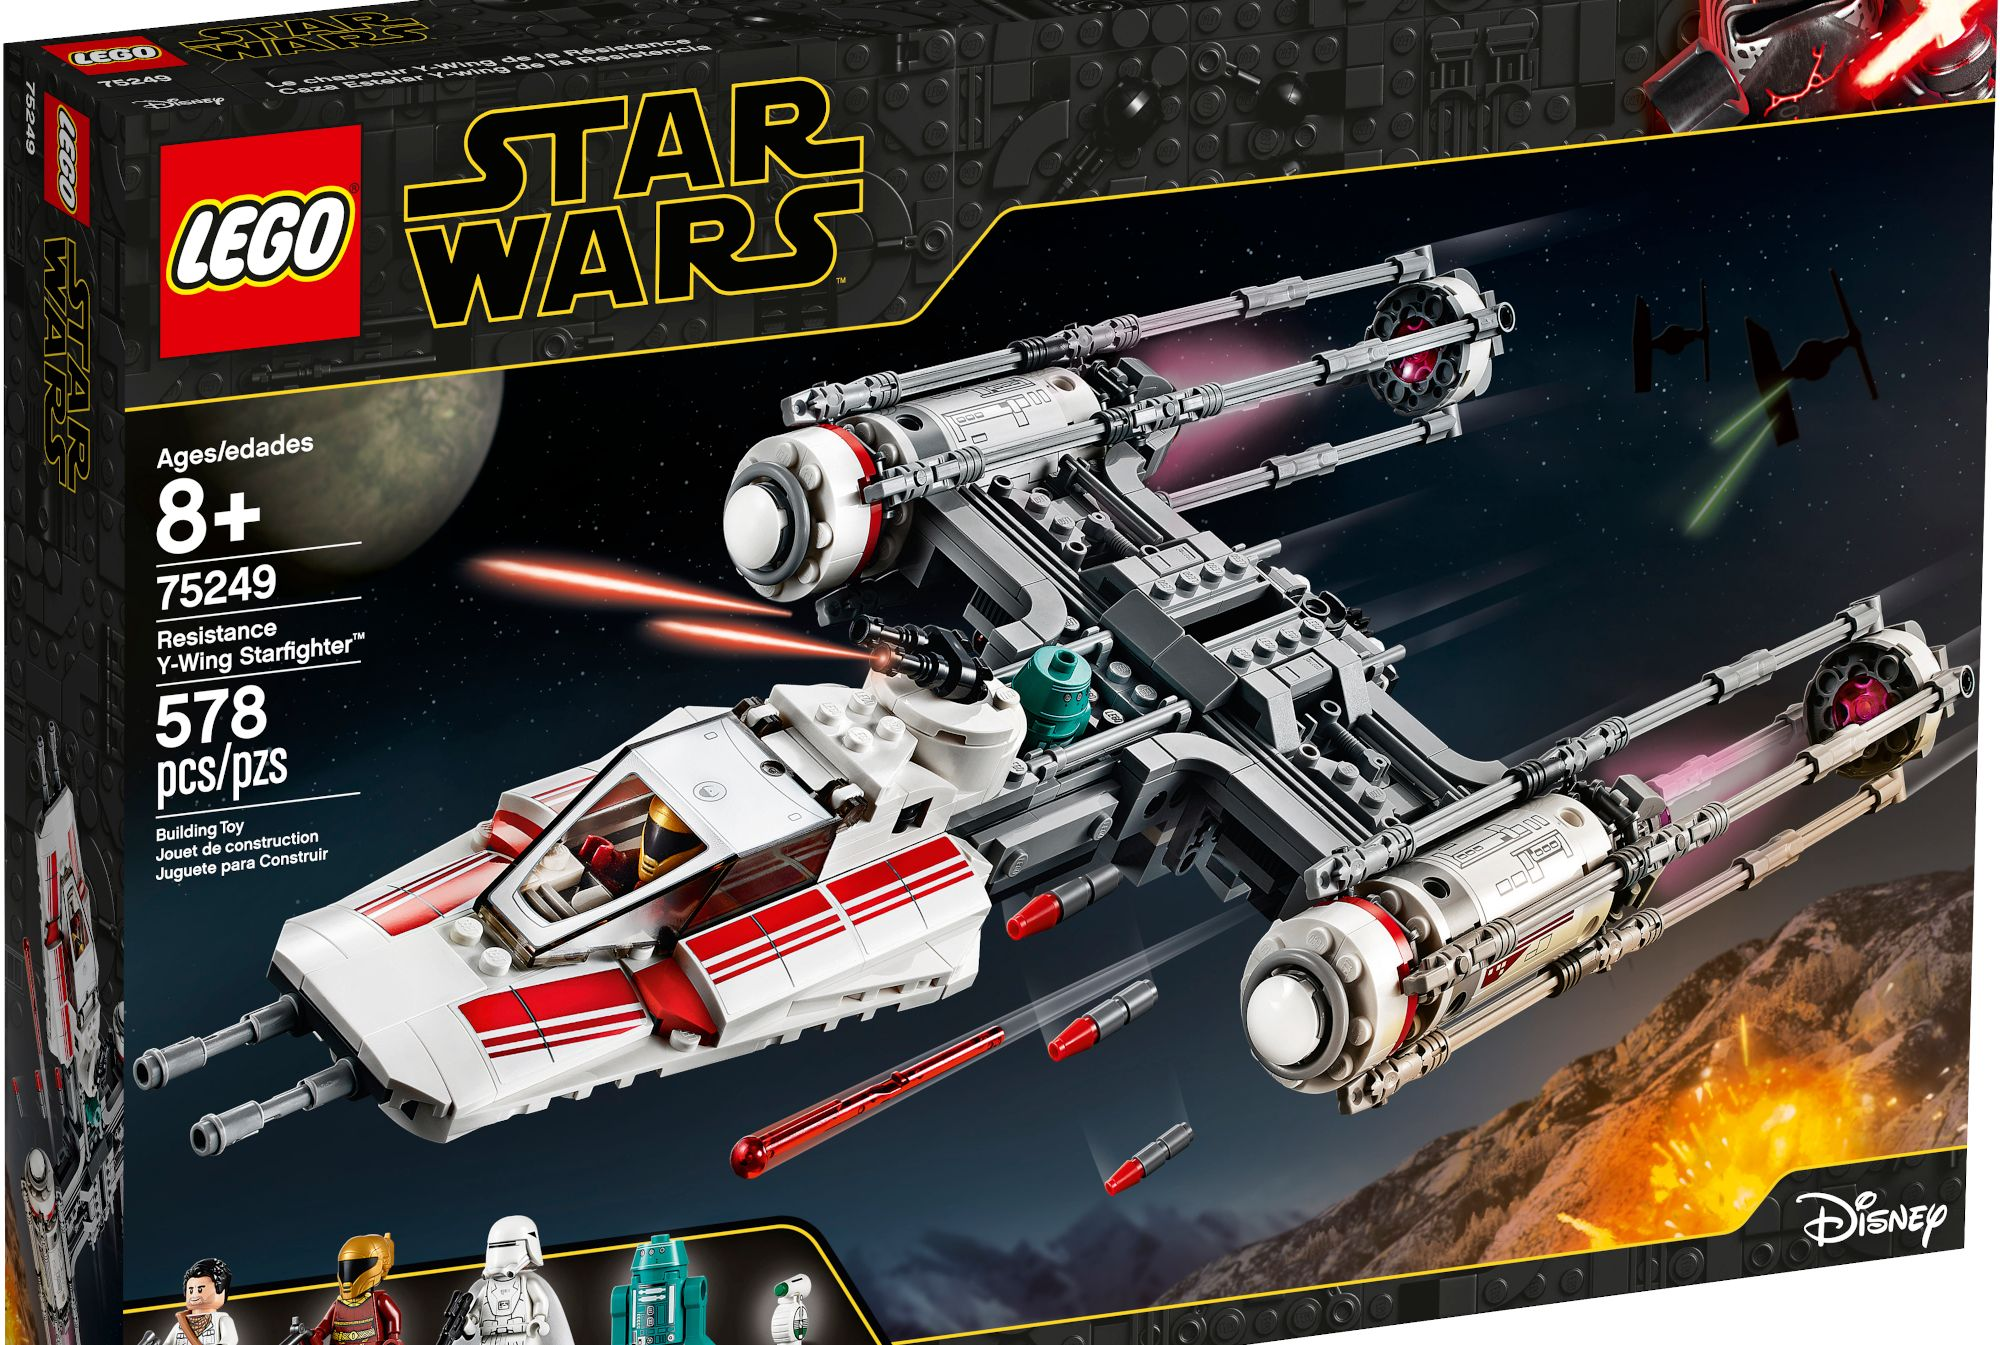 15 Amazing Lego Star Wars Sets You Can Buy Right Now Mental Floss